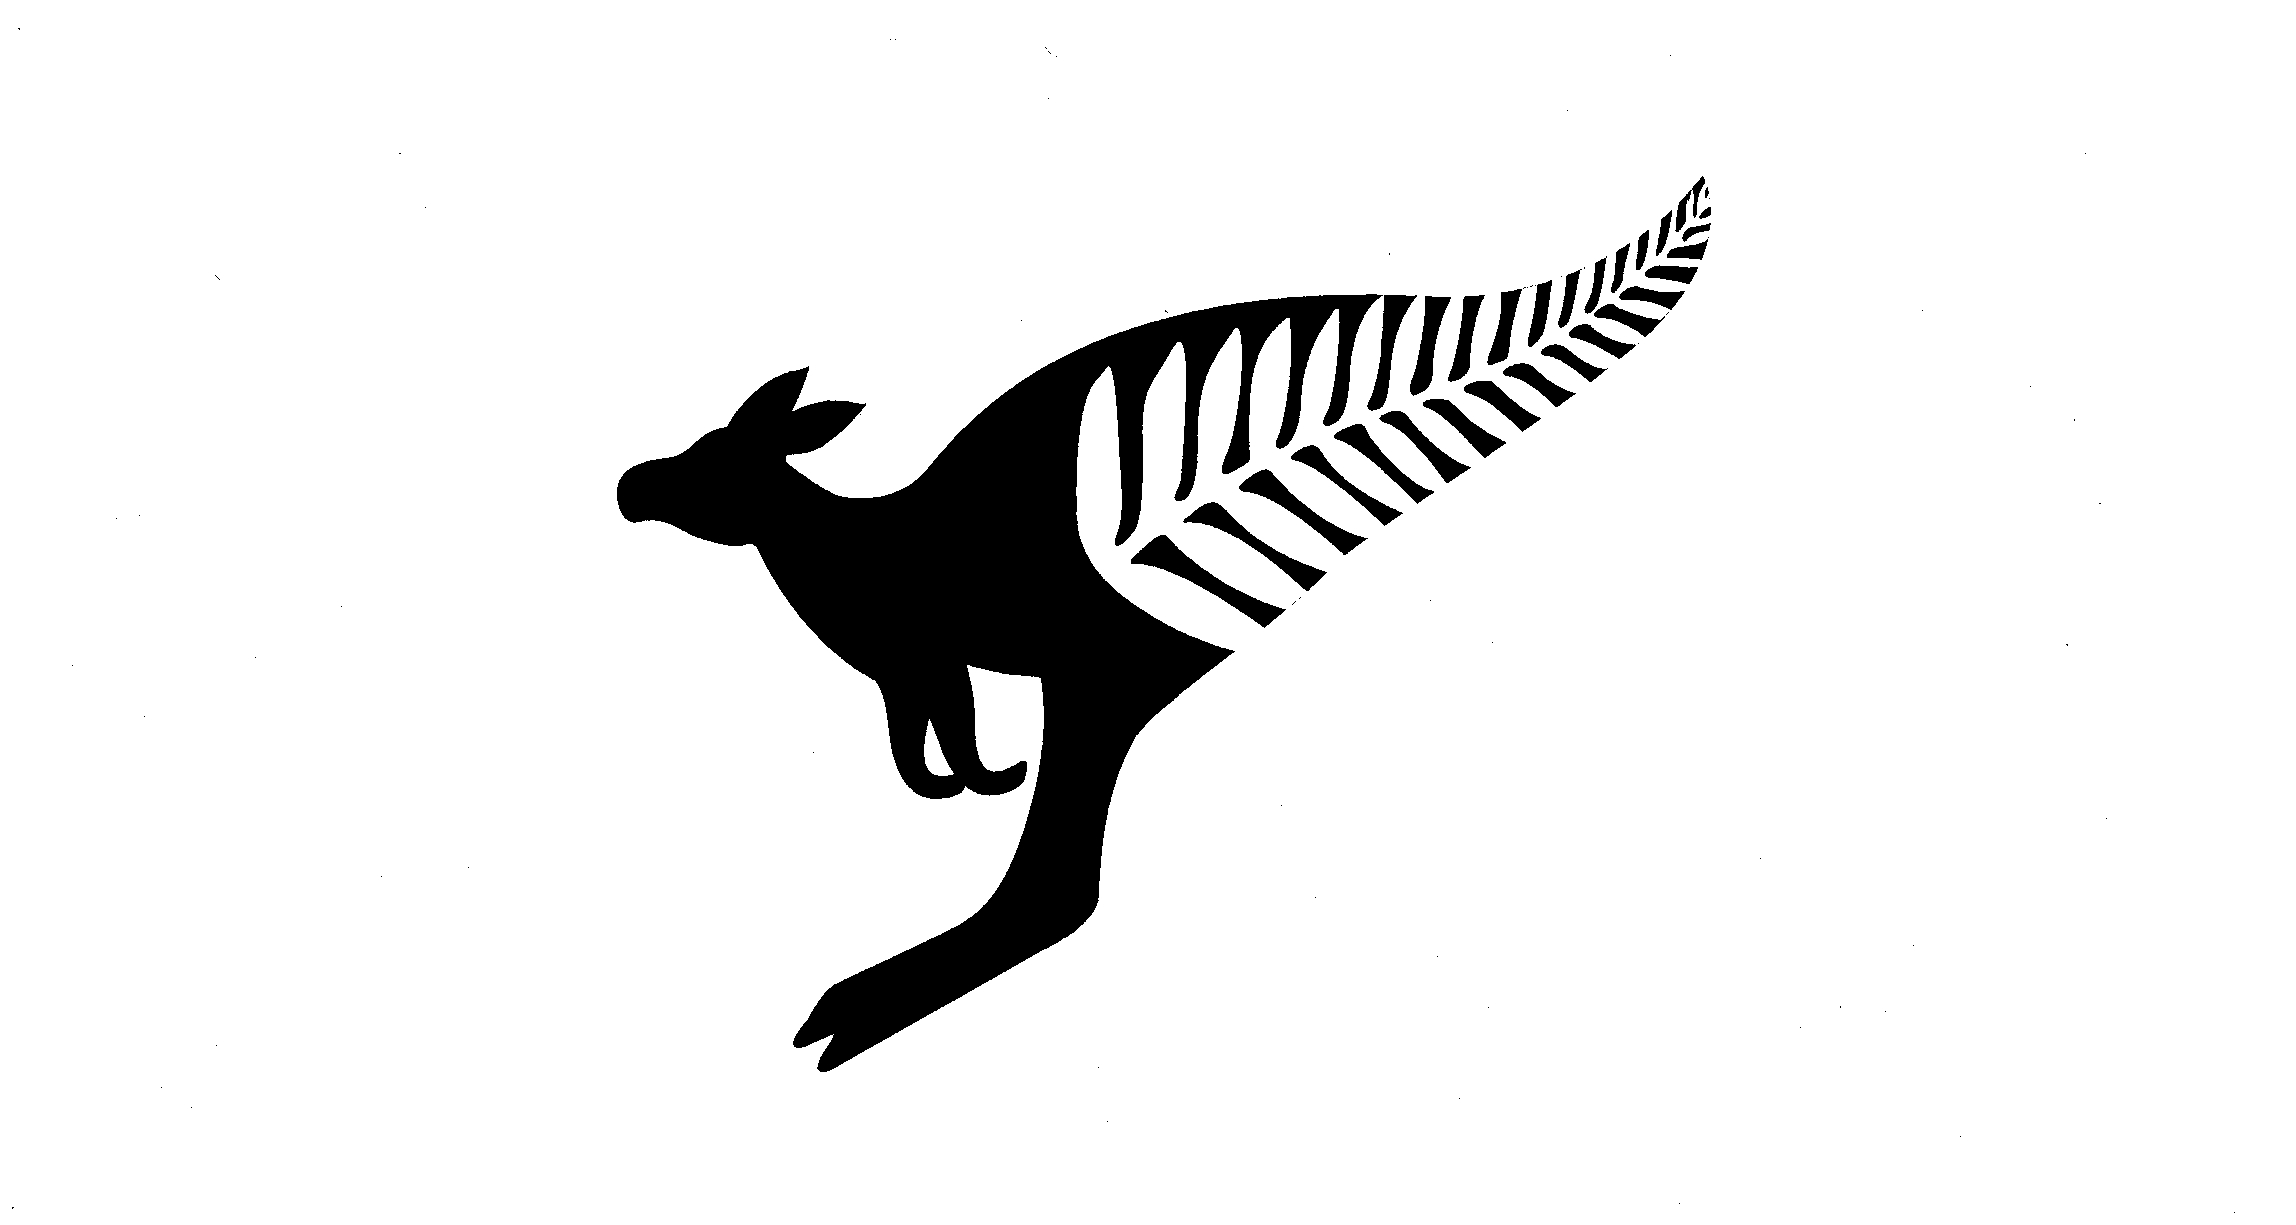 FERN LEAF FORMS TAIL OF KANGAROO,SILHOUETTE by Cazna Australia Pty ...